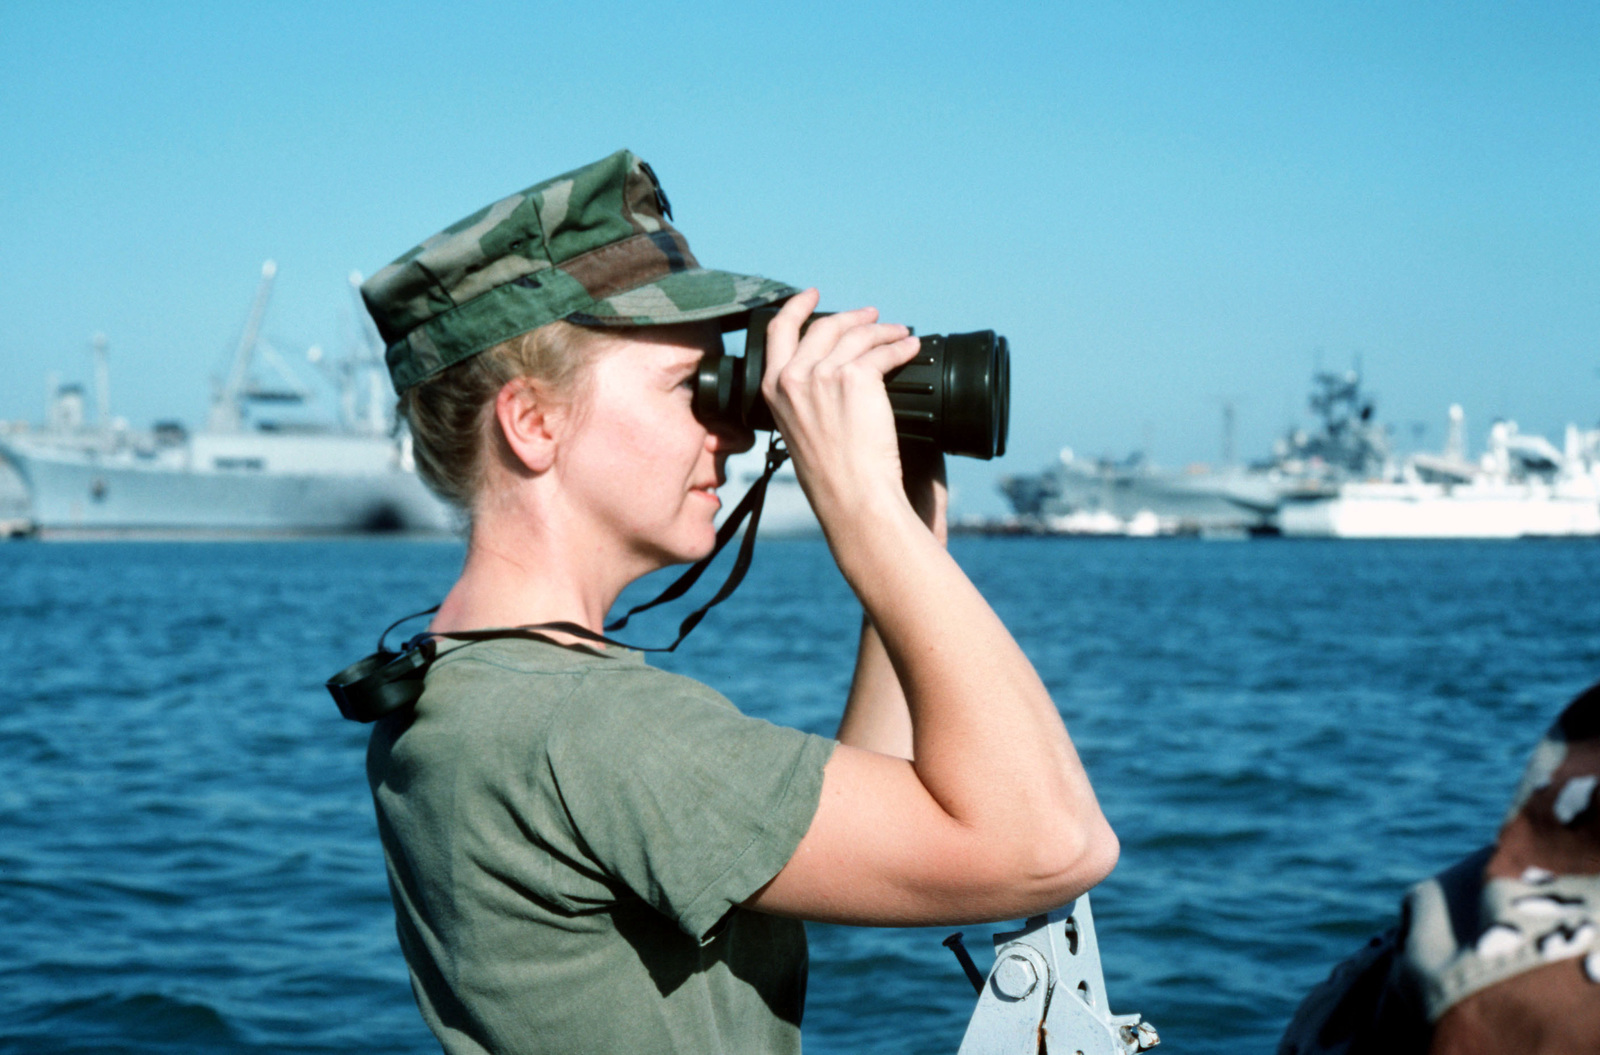 PETTY Officer 1ST Class Cynthia Harvey uses a pair of binoculars to scan the area while on patrol in the harbor. Harvey is a member of the security detachment assigned to the US Navy Administrative Support Unit, Bahrain